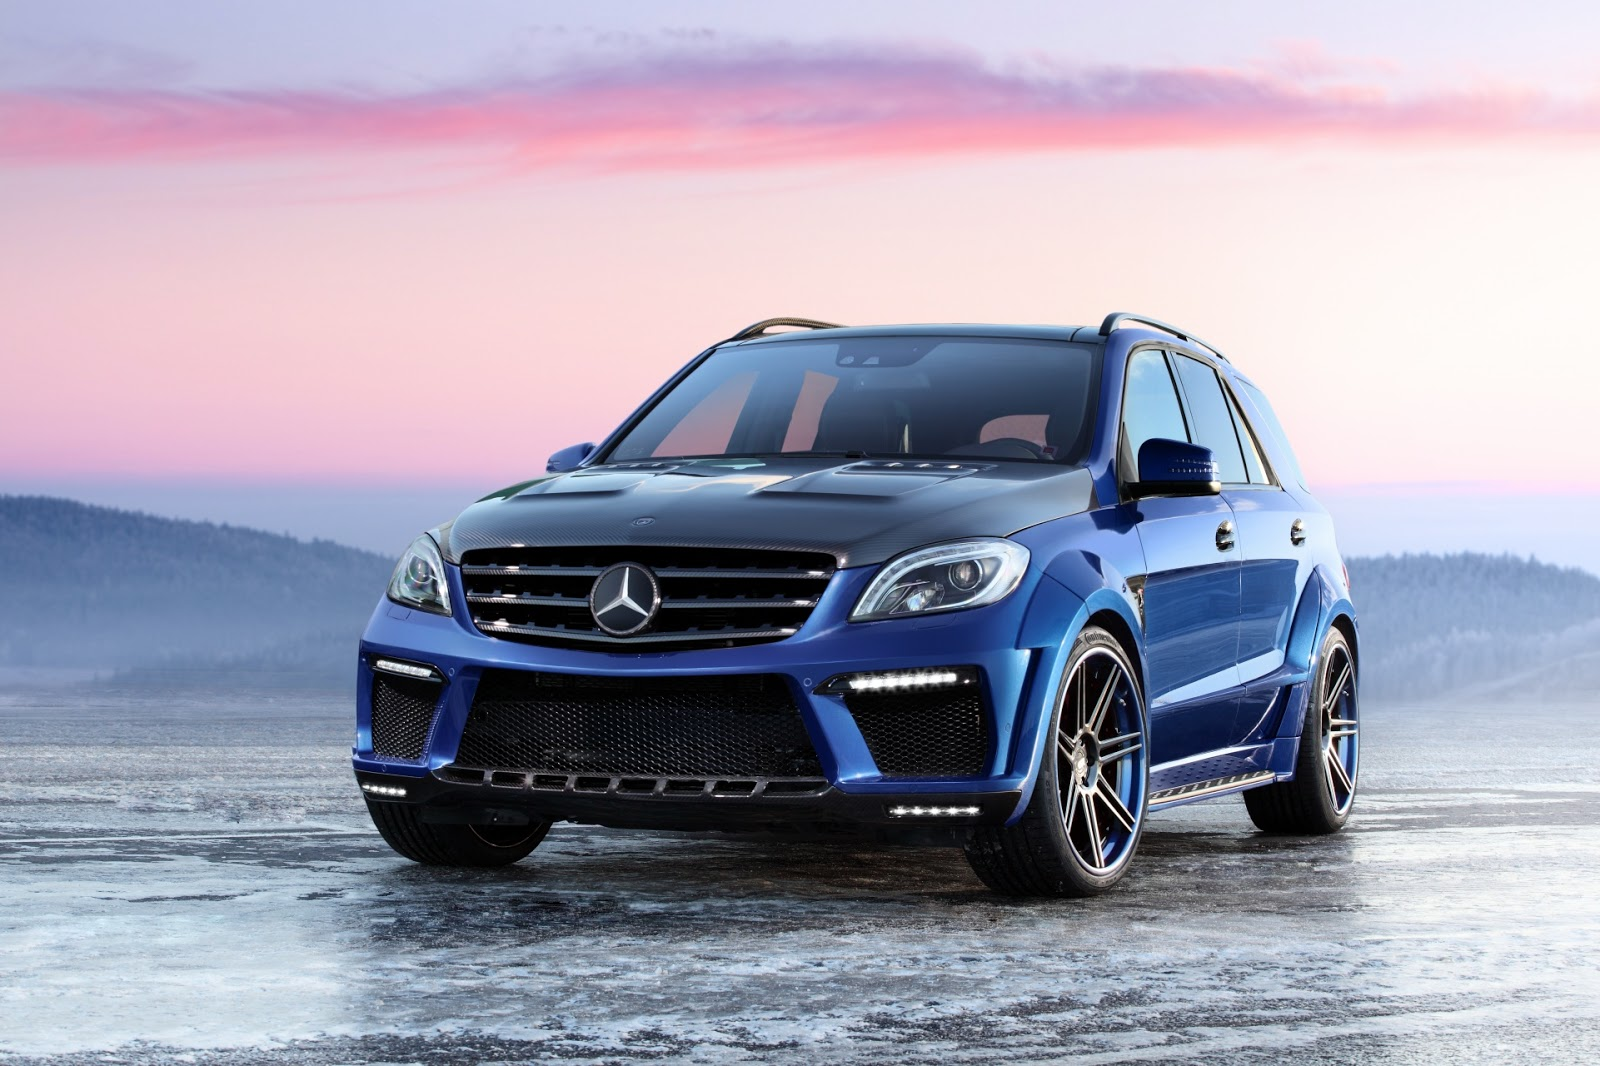 All tuning cars nz 2012 topcar mercedes benz ml63 amg inferno for Mercedes benz ml 63 amg